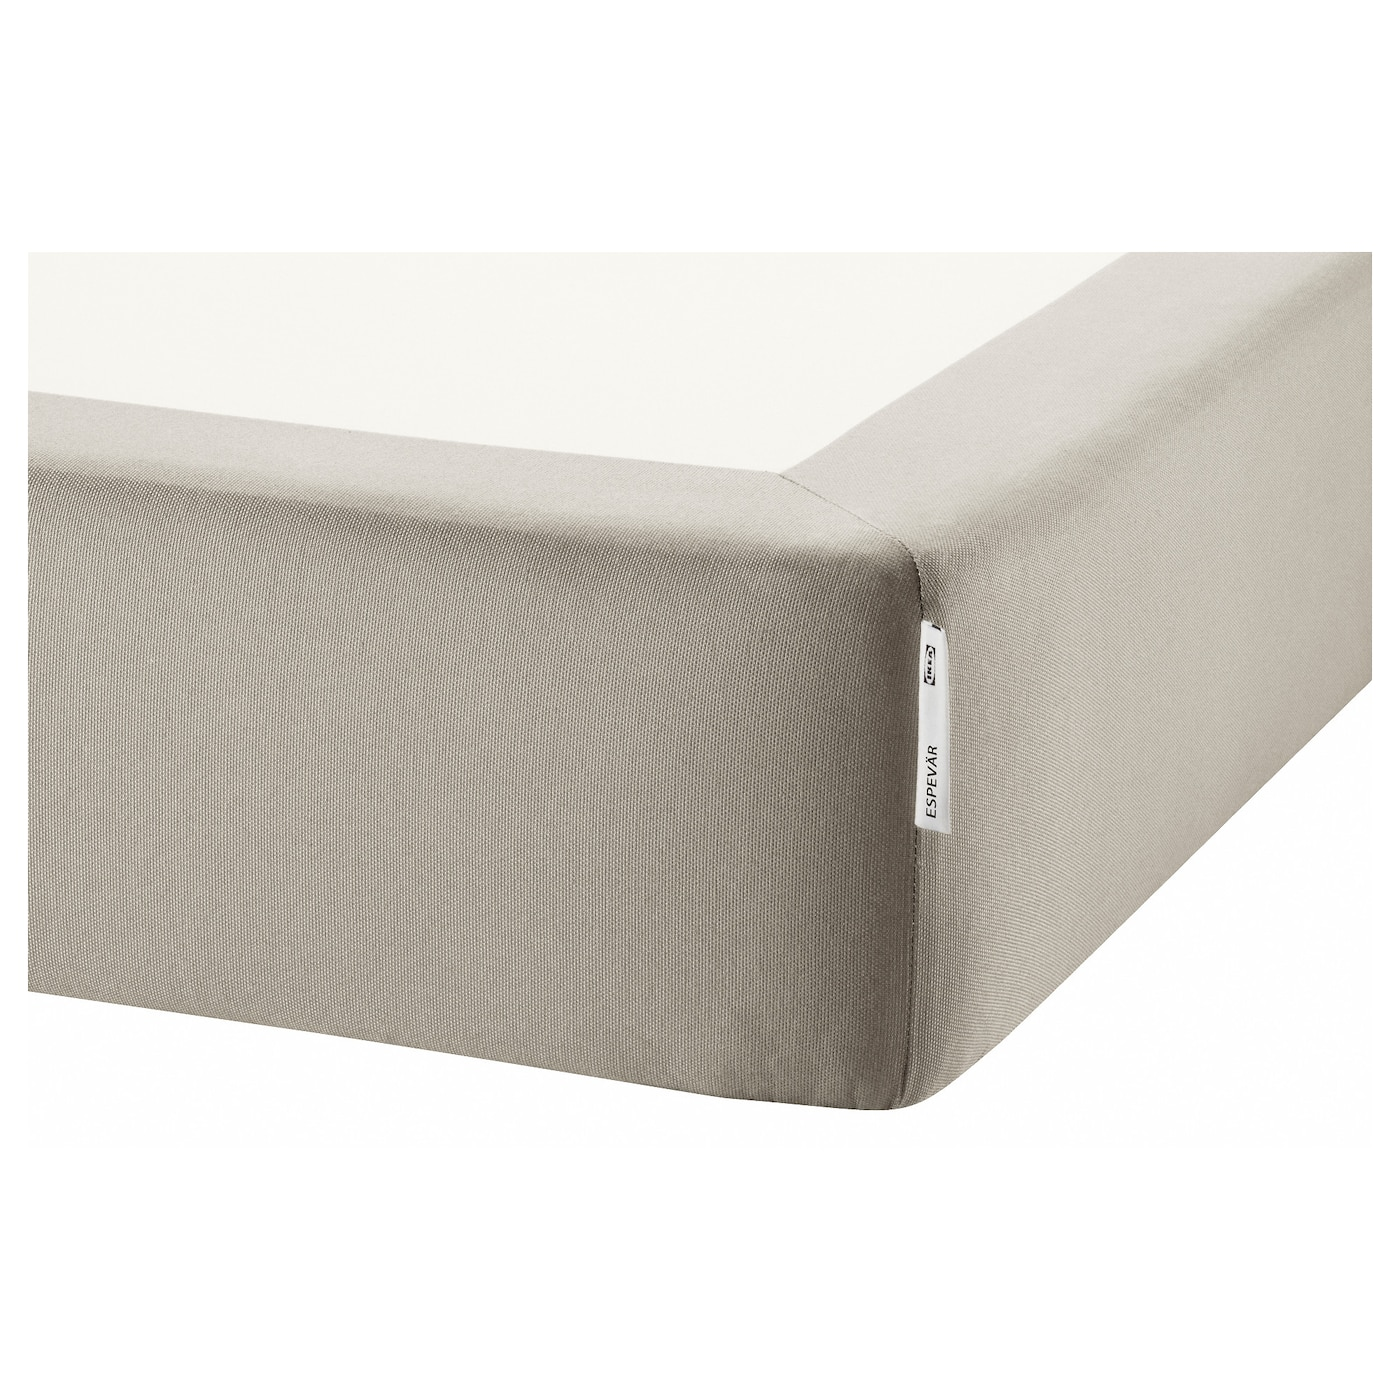 IKEA ESPEVÄR sprung mattress base Easy to transport, as the mattress base comes in a flat-pack.